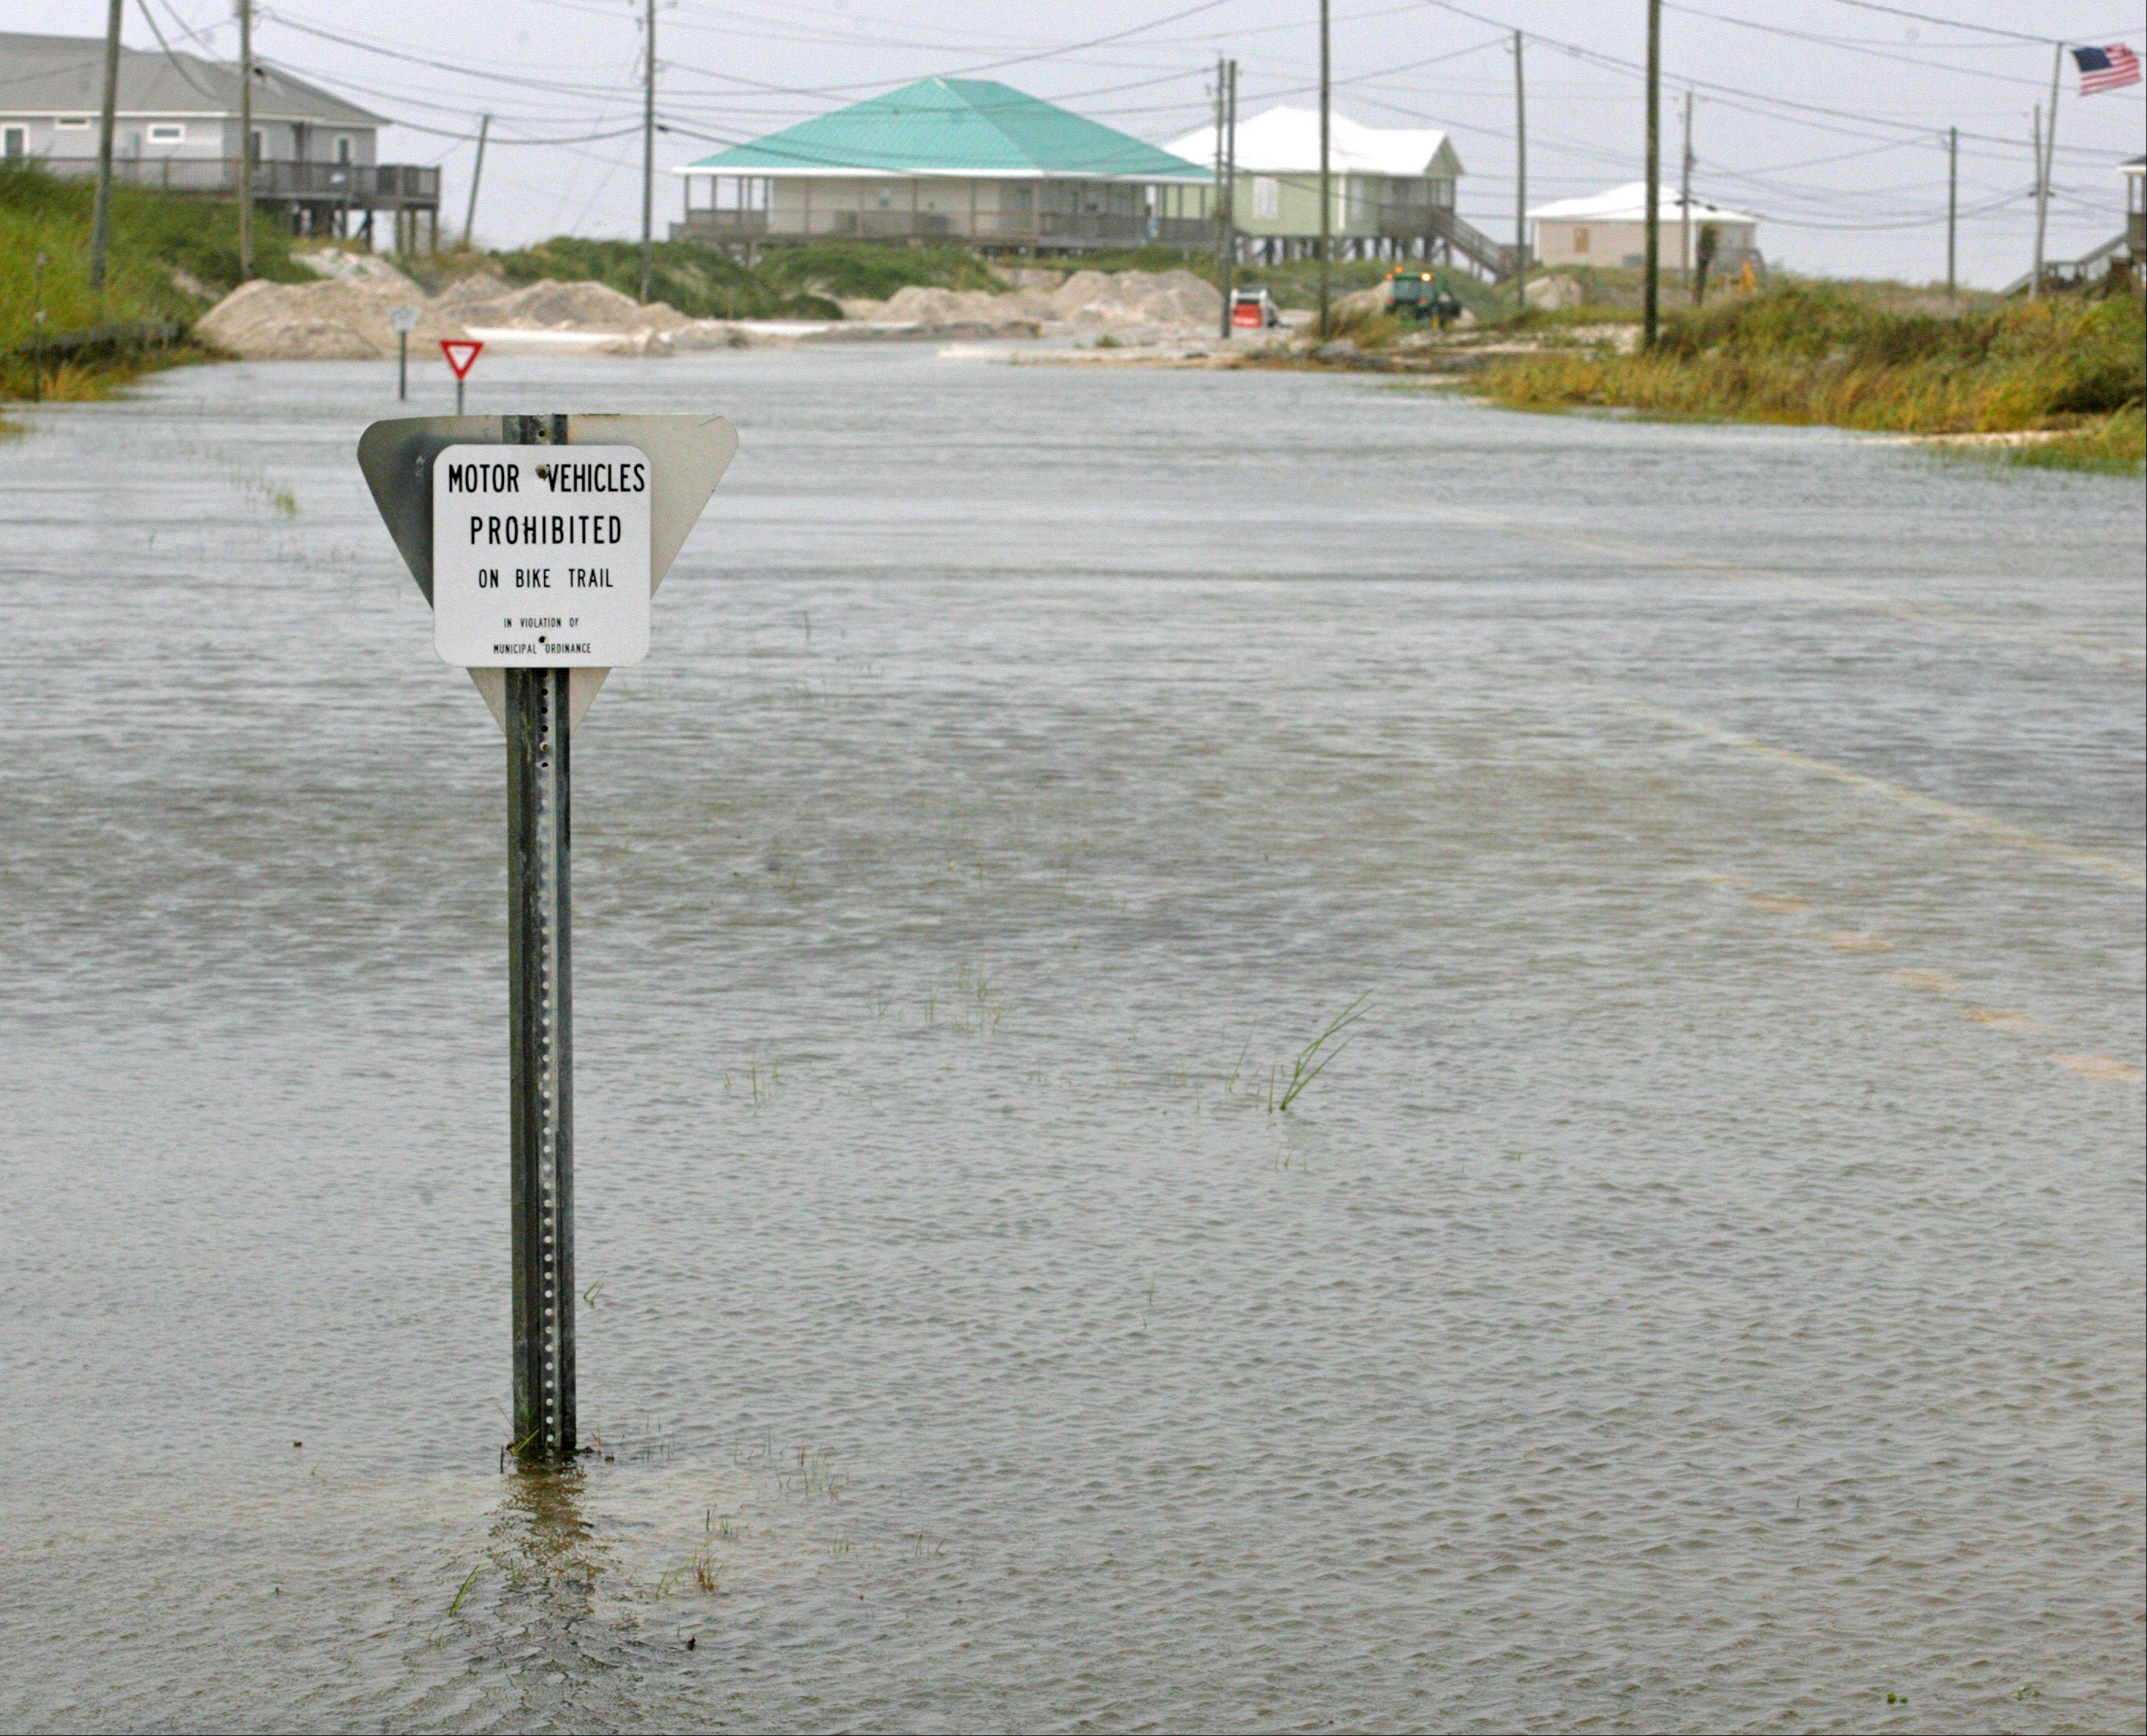 A sign prohibiting motor vehicles on the island's bicycle trial is now surrounded by flood waters that also cover Bienville Blvd., Thursday, Aug. 30, 2012 on Dauphin Island, Ala.